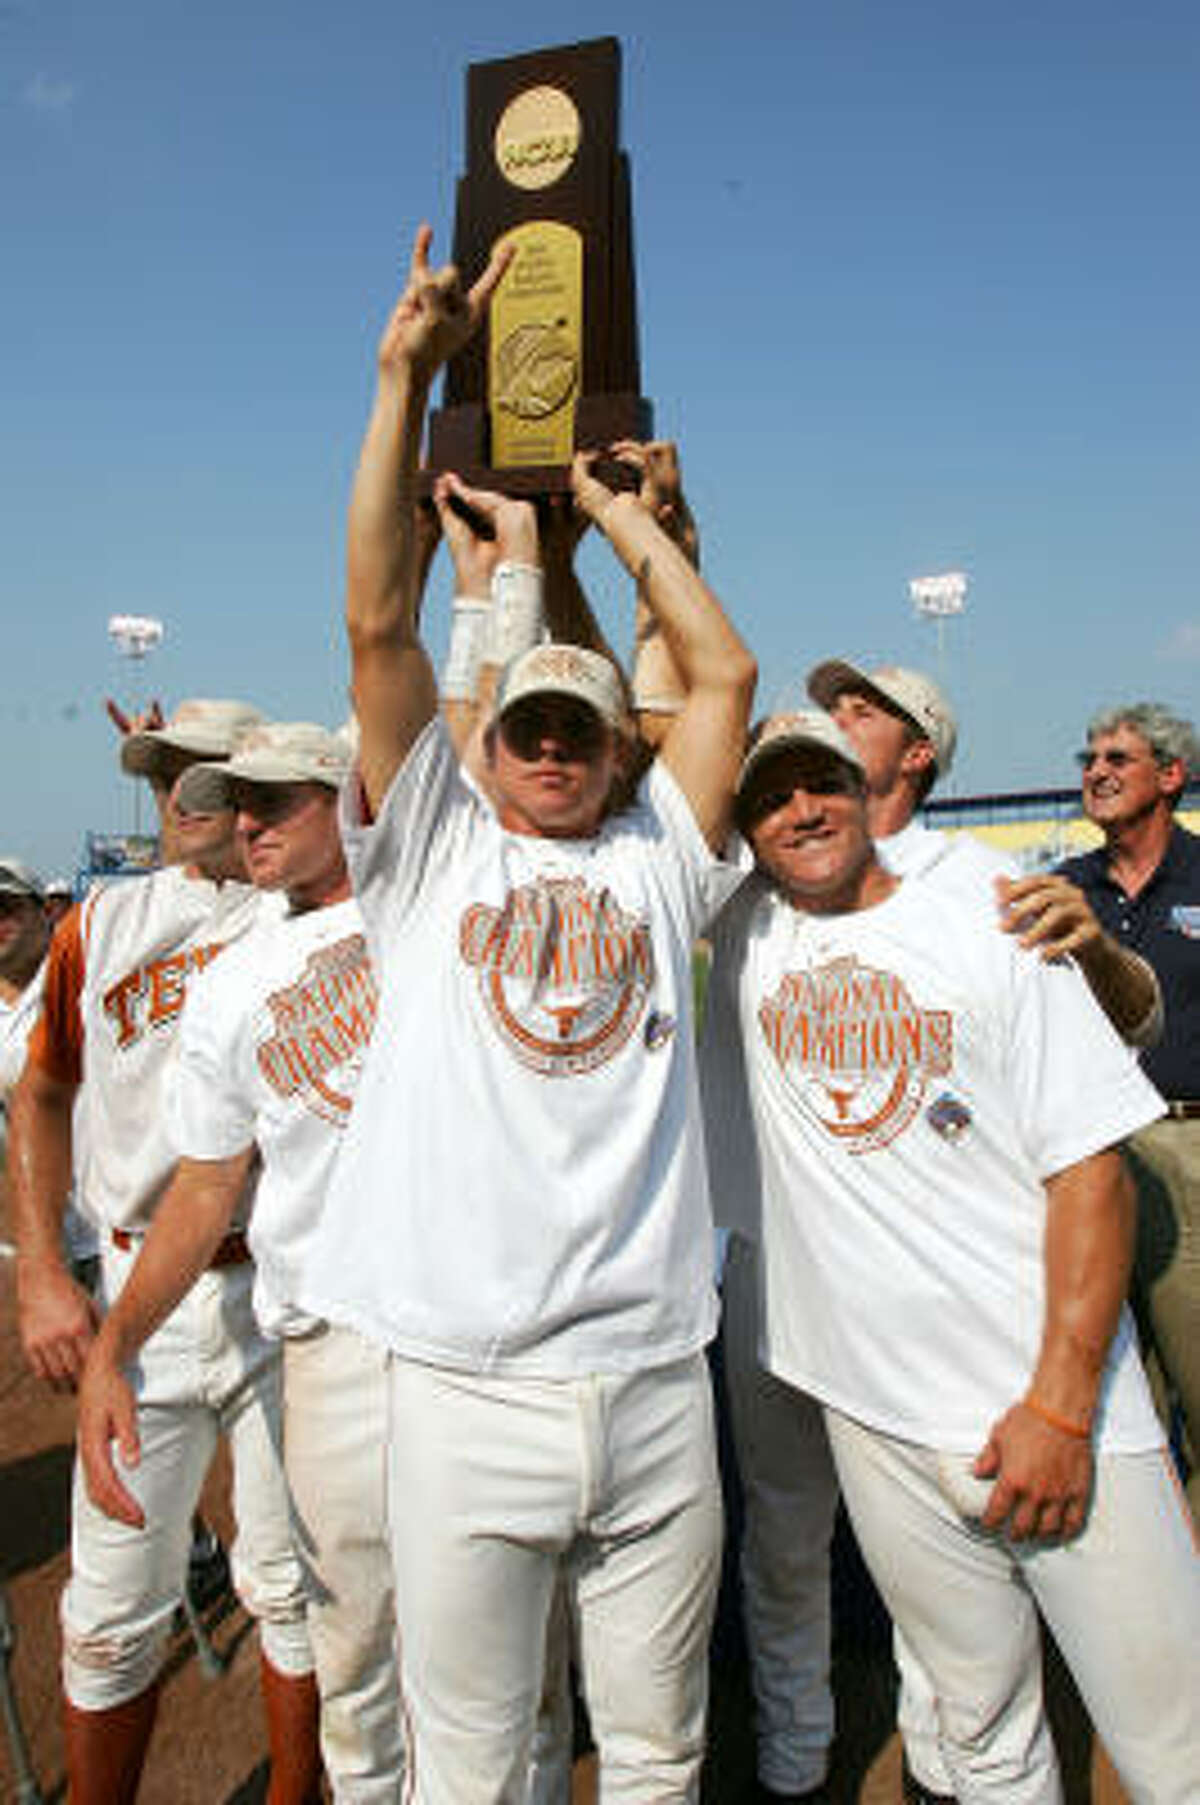 Texas (2005) The Longhorns swept Florida in the championship series to claim the program's first national title since 2002 and the second in the era of coach Augie Garrido.